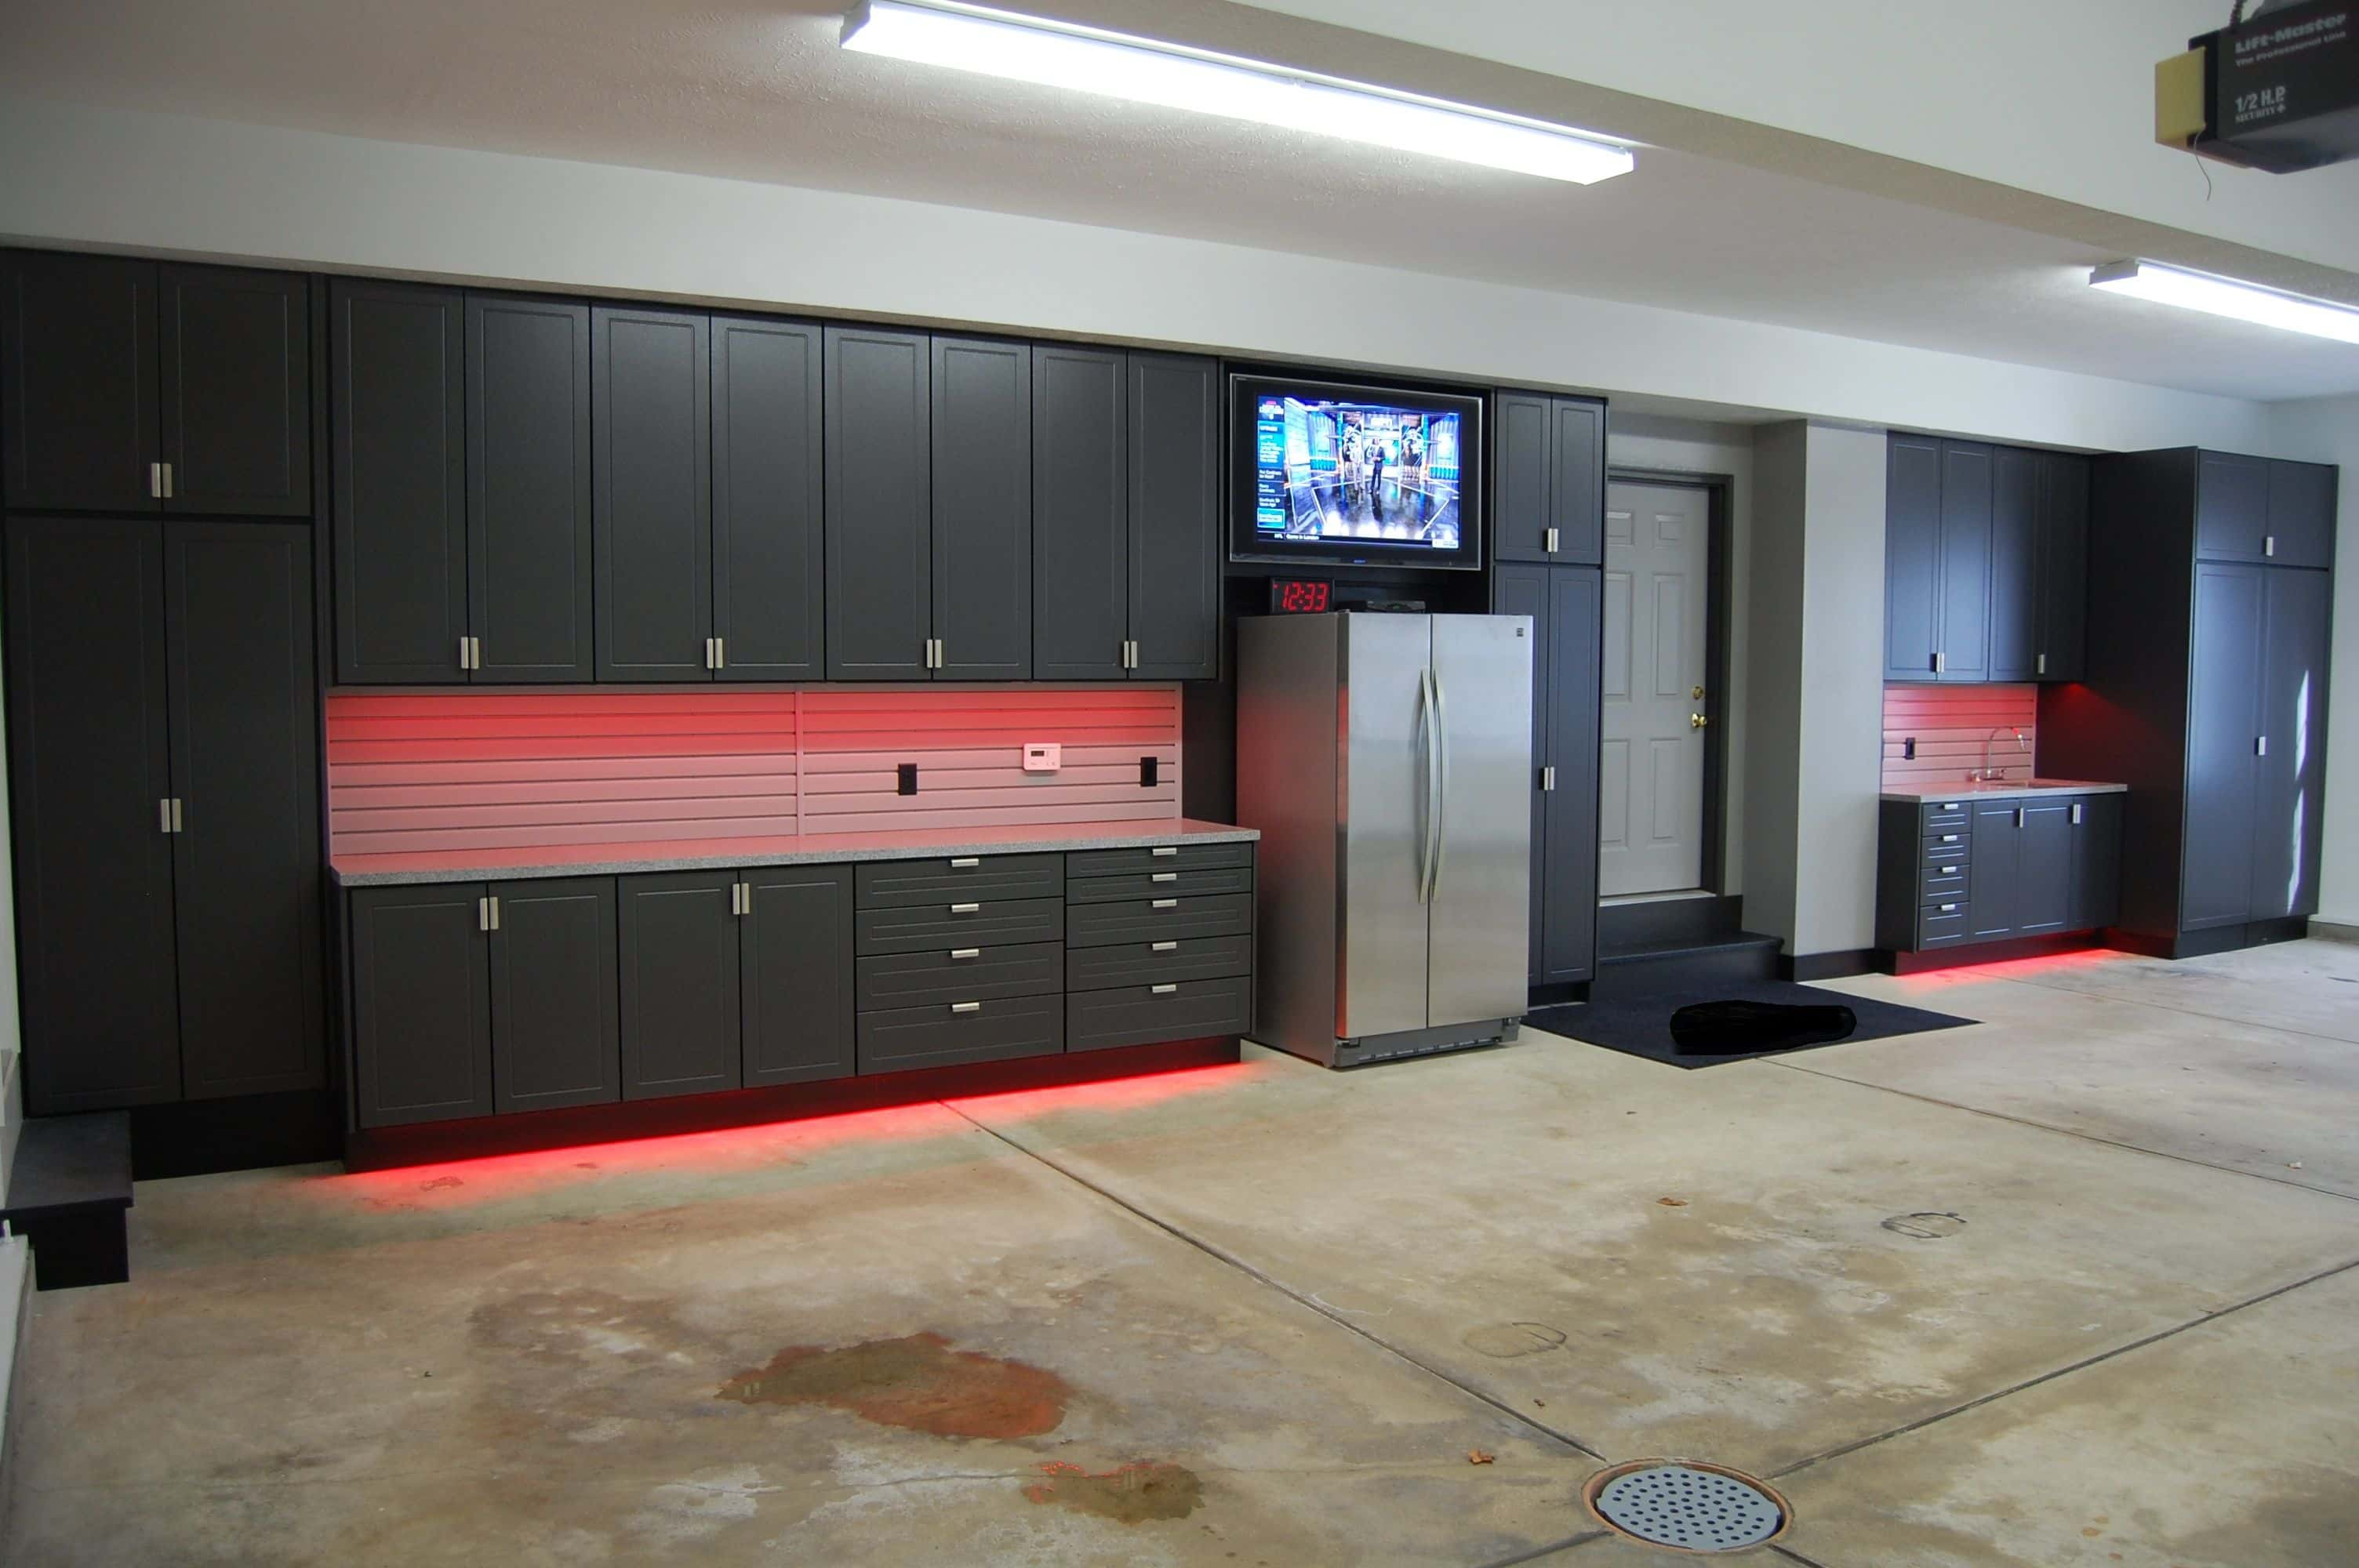 Joinery Dubai specializes as custom garage room furniture manufacturing listed as: cabinets, shelvings, wall units within Abu Dhabi.